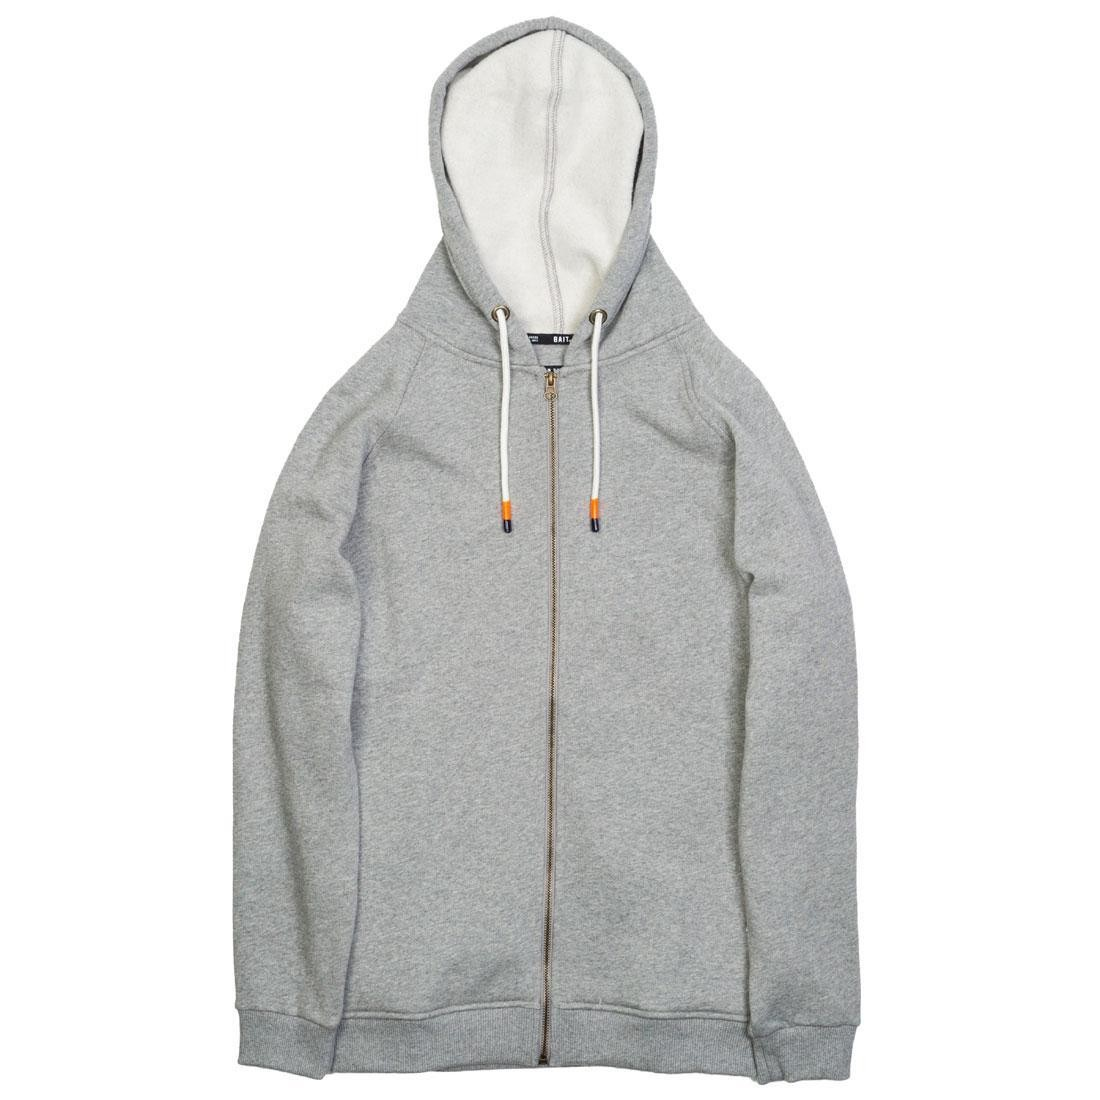 BAIT Men Zip Up Hoody (gray)